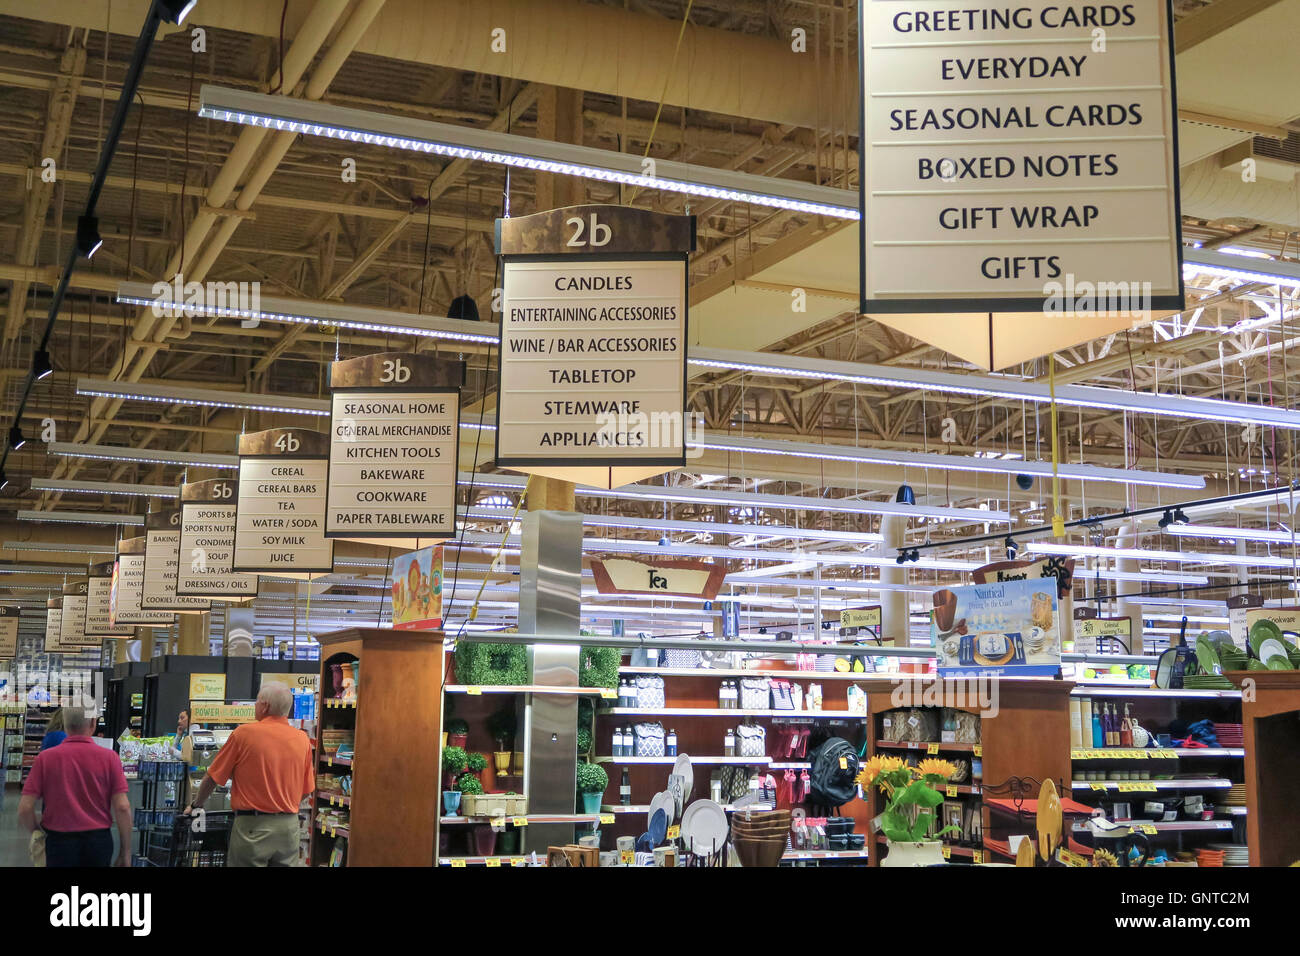 Overview Of Store Interior With Aisle Signs Wegmans